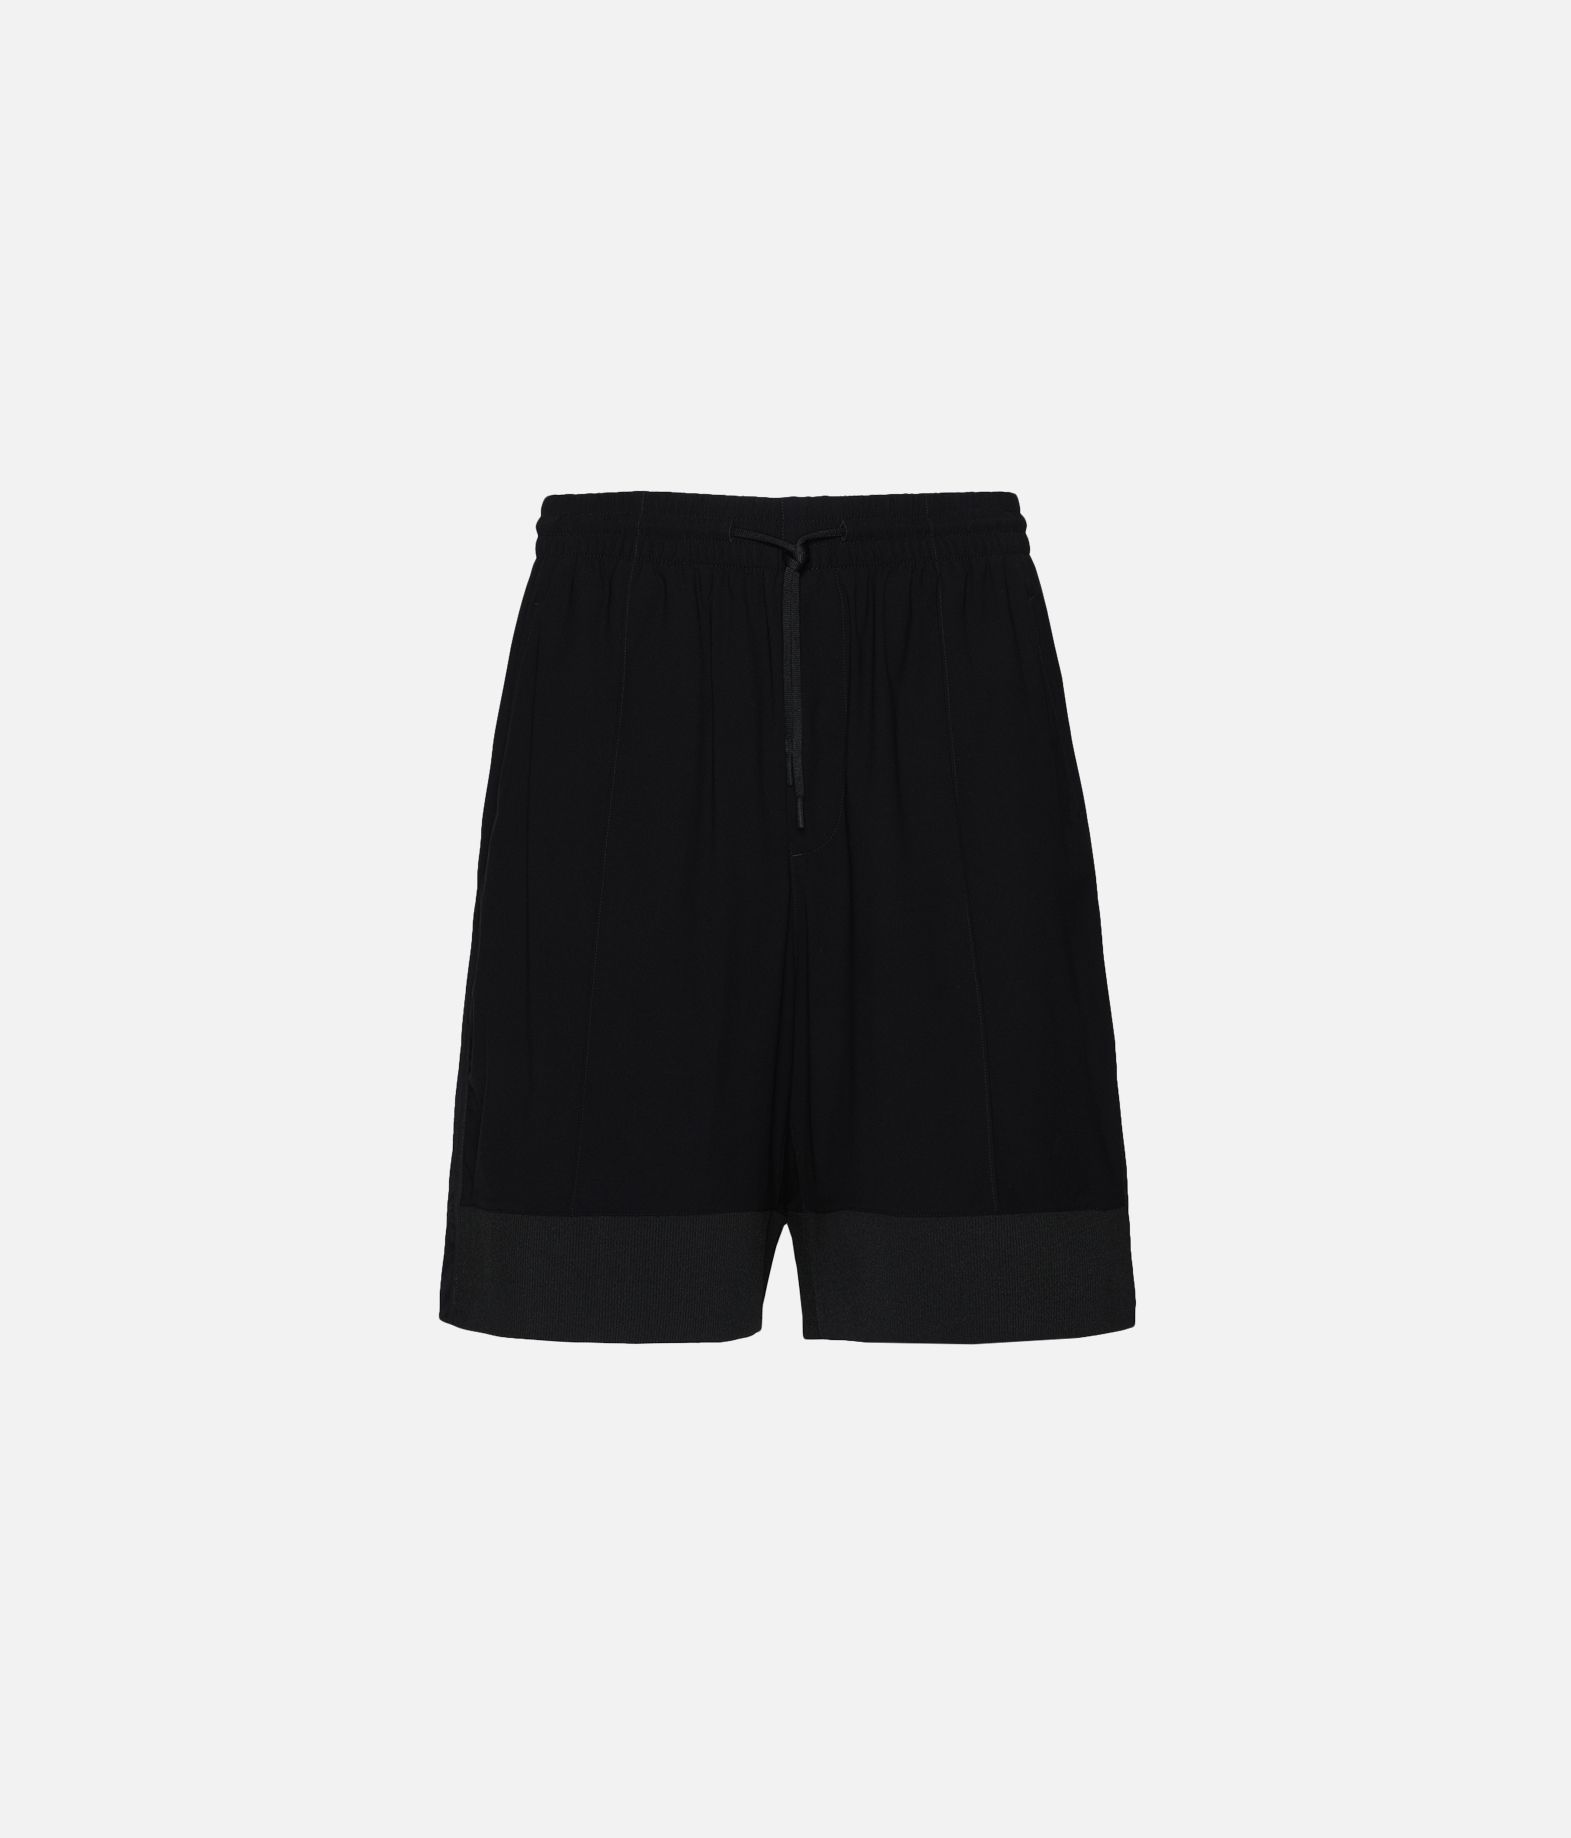 Y-3 Y-3 3-Stripes Material Mix Shorts Shorts Man f